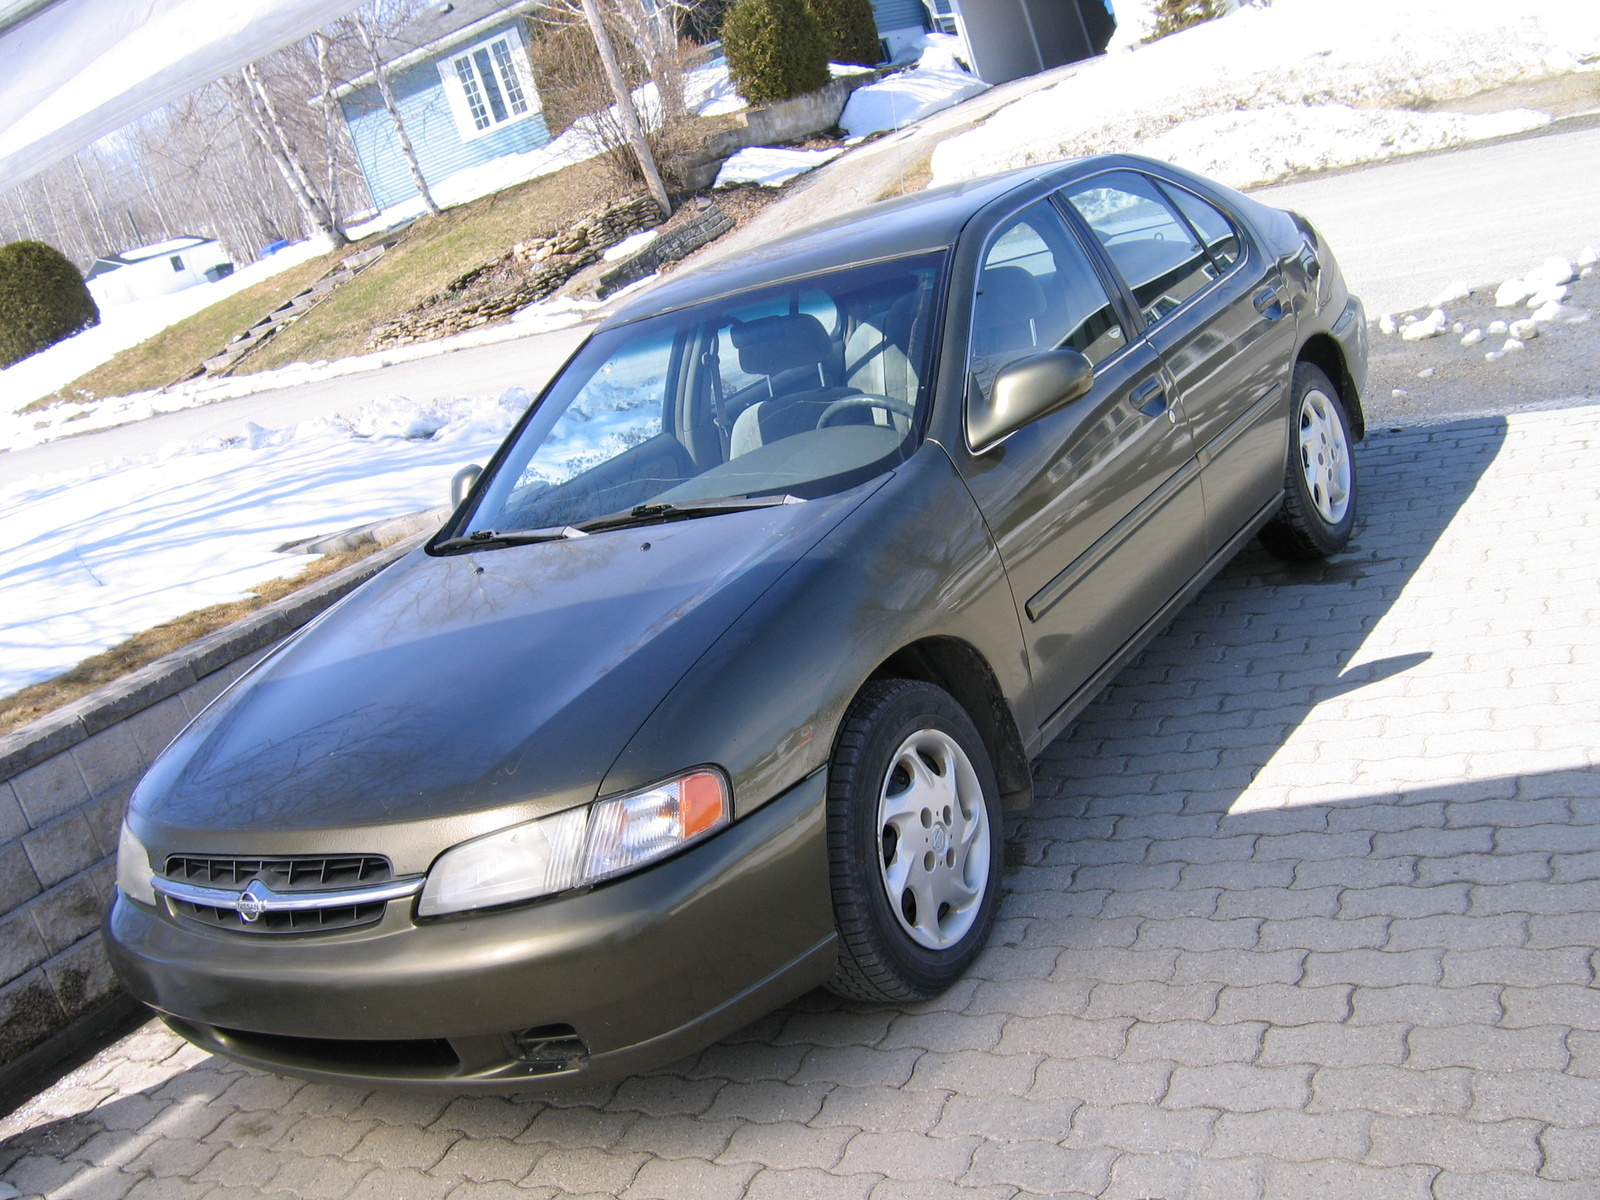 Picture of 1998 nissan altima gxe exterior gallery_worthy